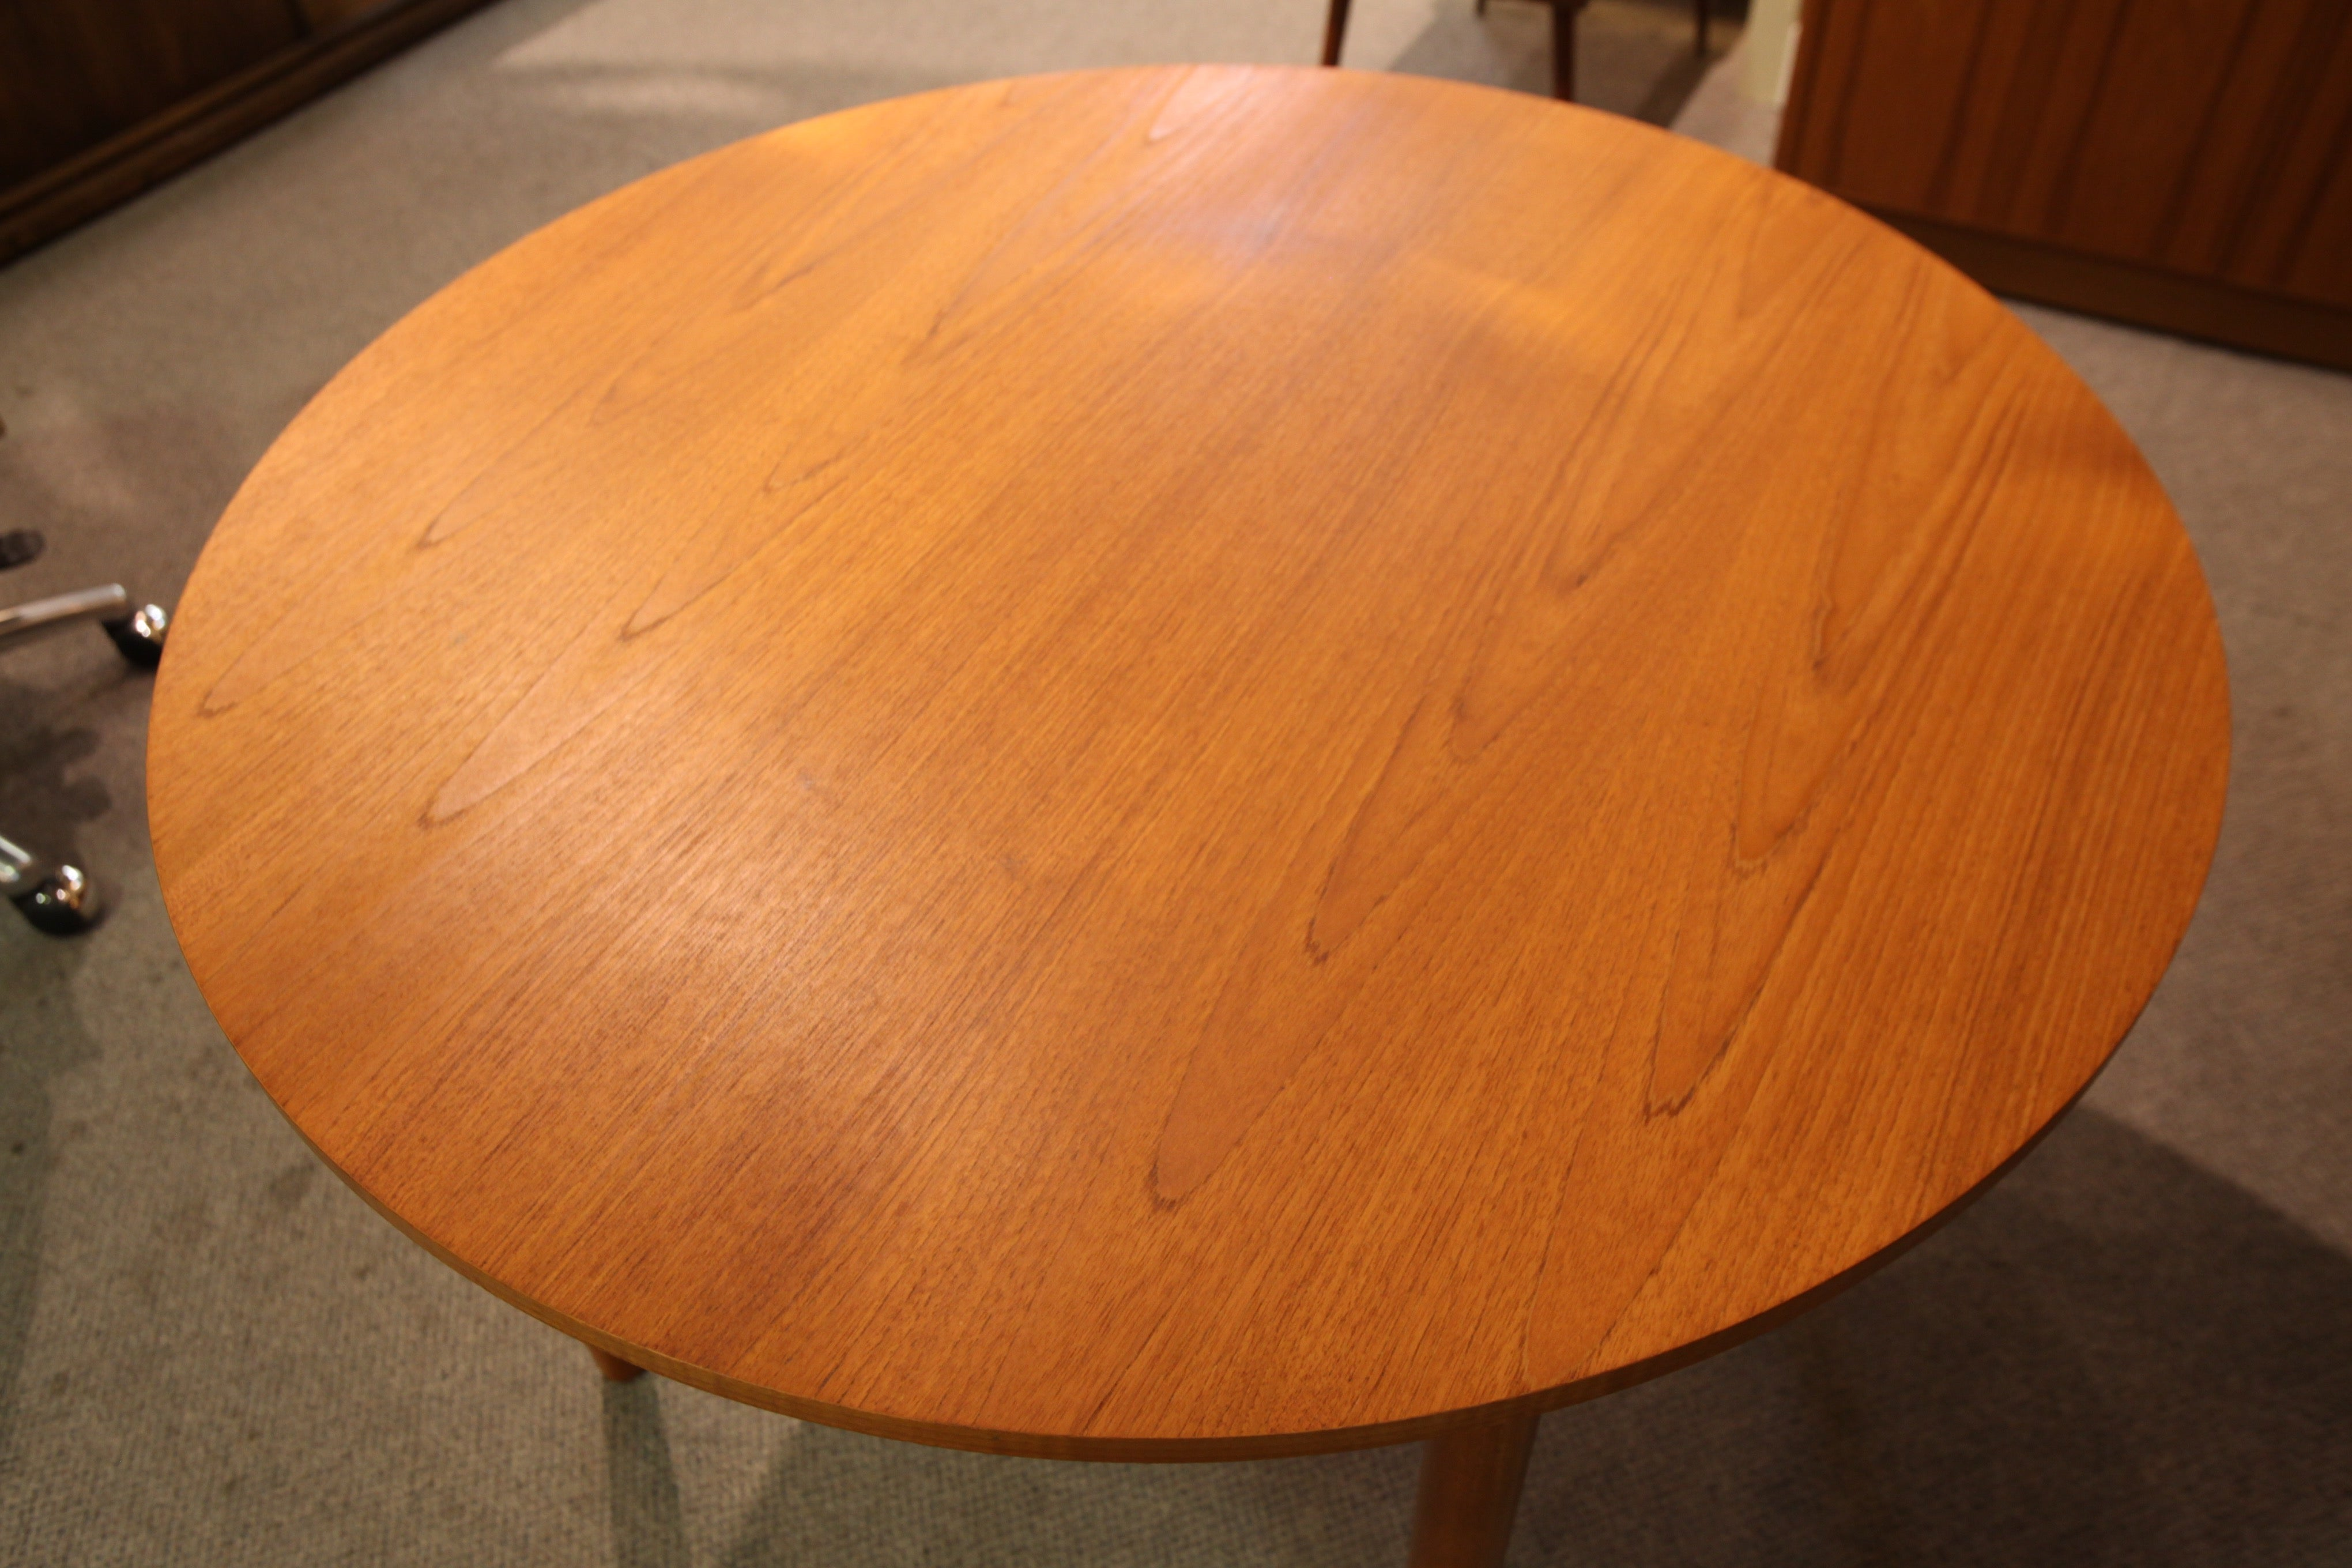 "Round Teak Dining table (41.75"" across x 28"" high)"